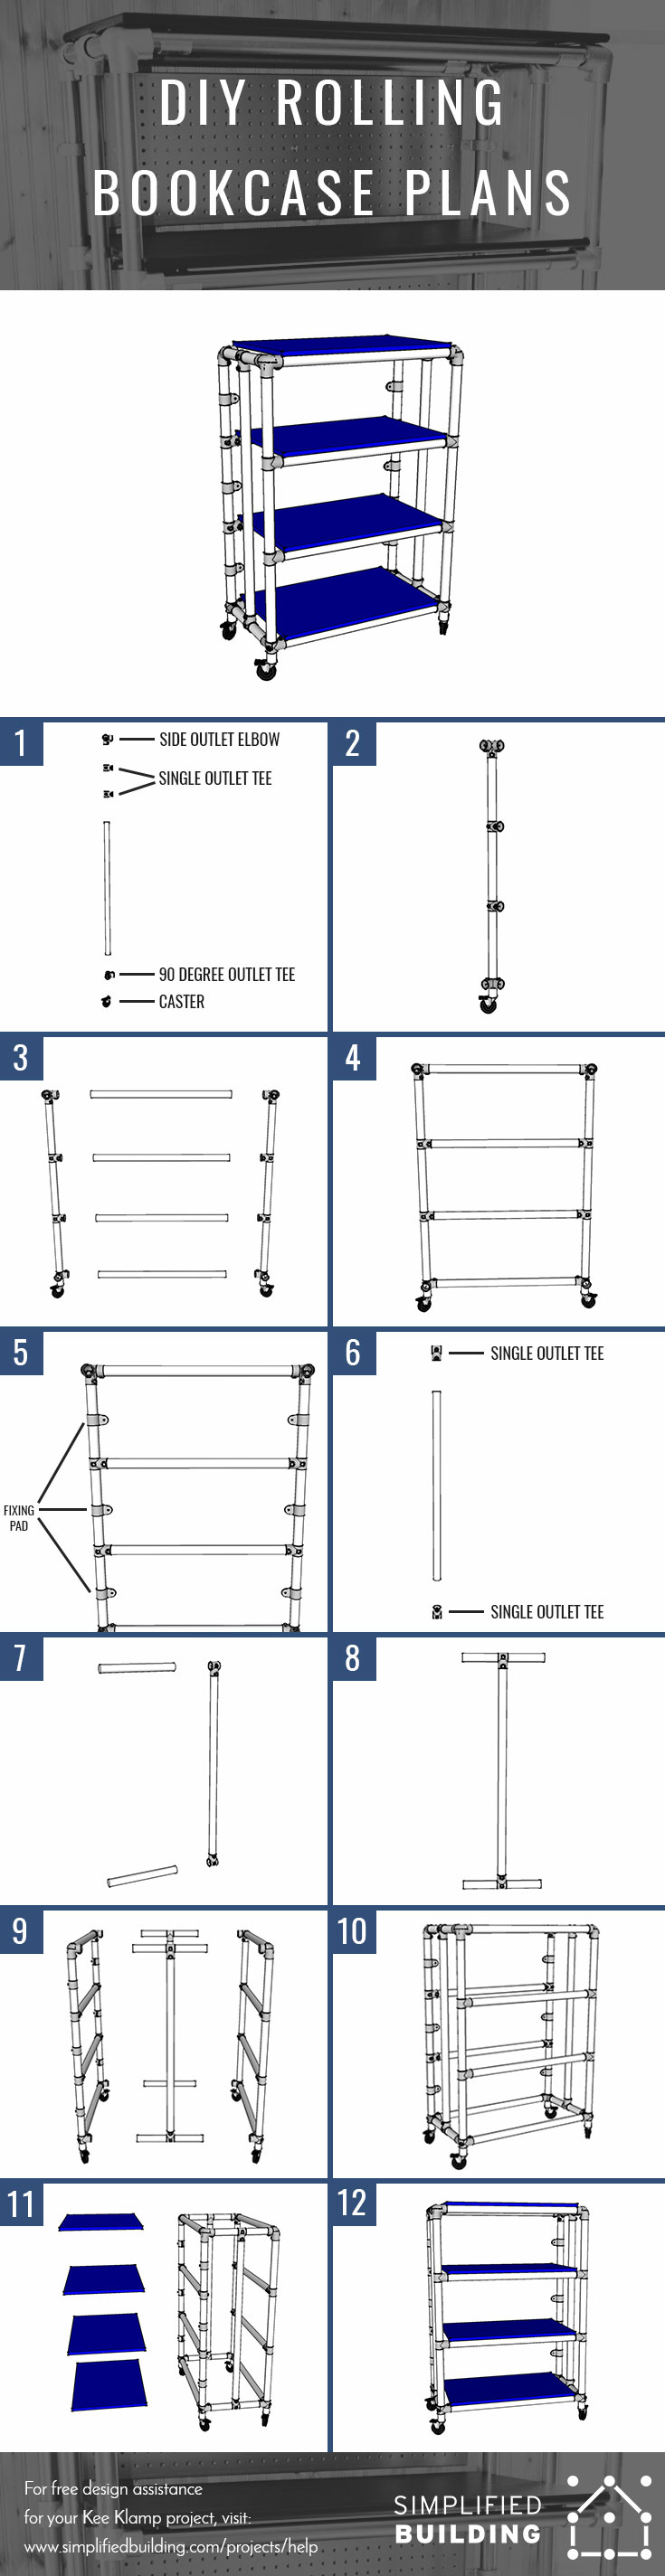 Rolling Bookcase Plans